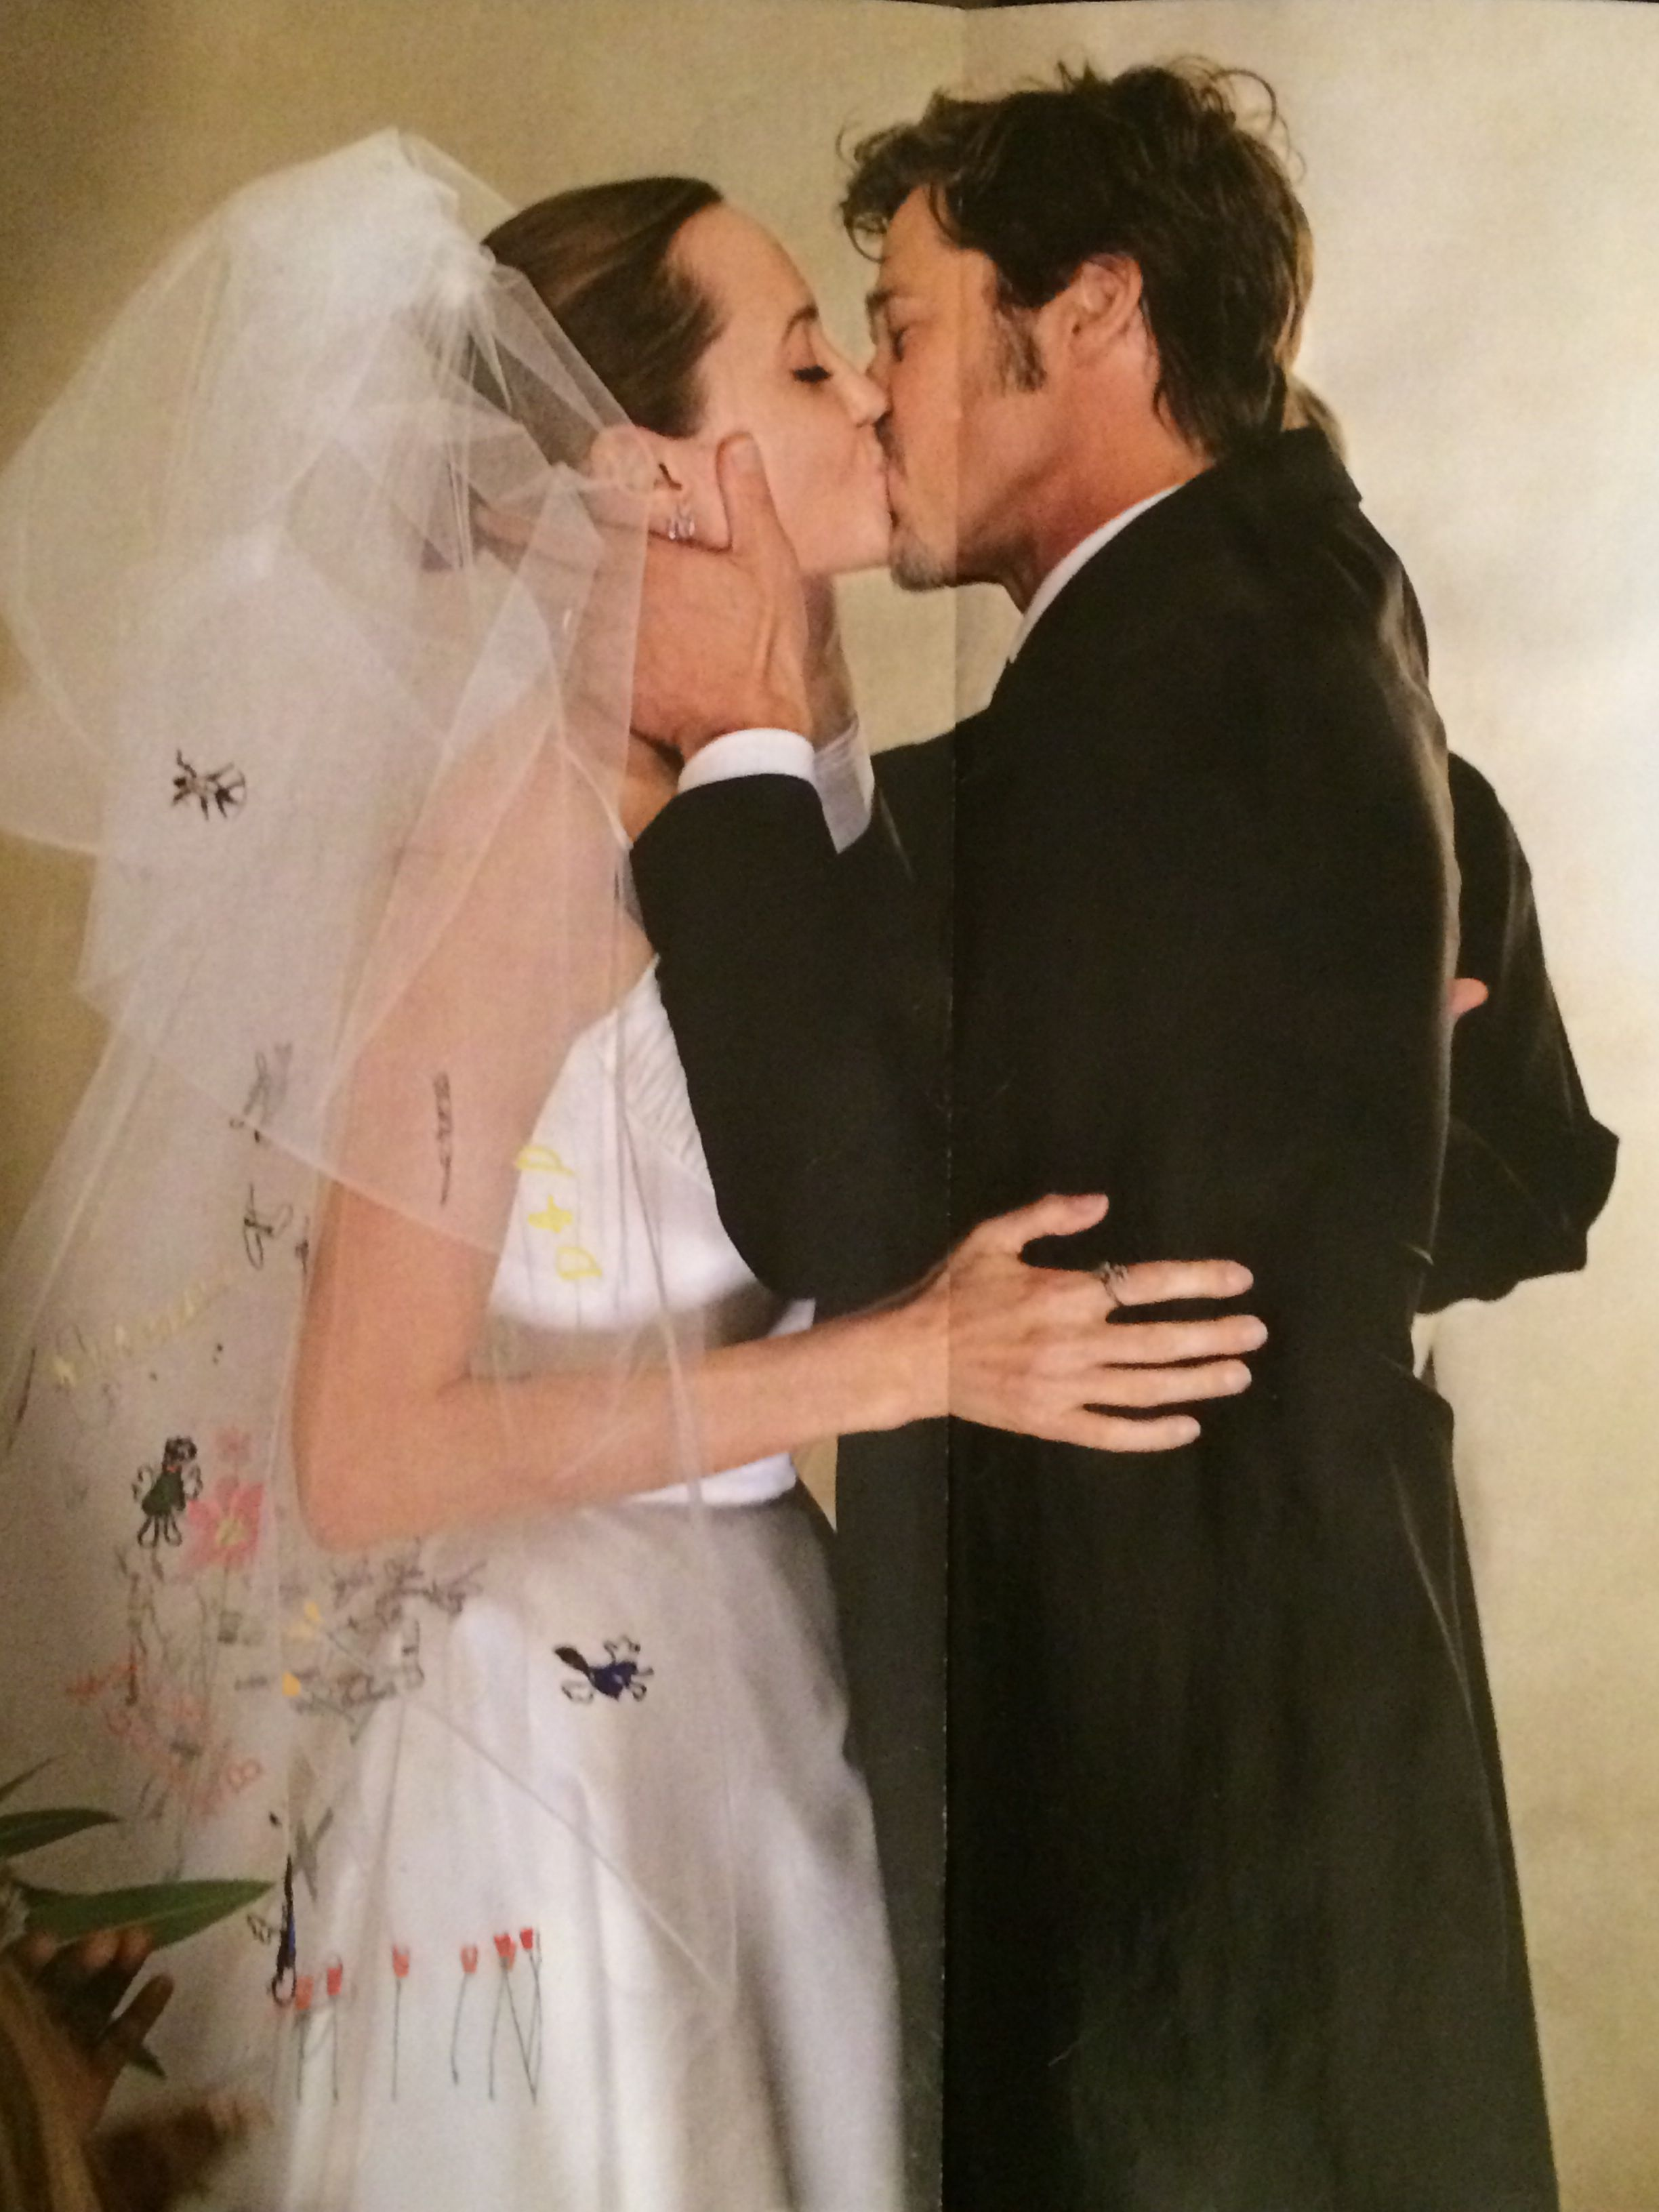 Angie And Brad Wedding Kiss Via People Magazine With Images